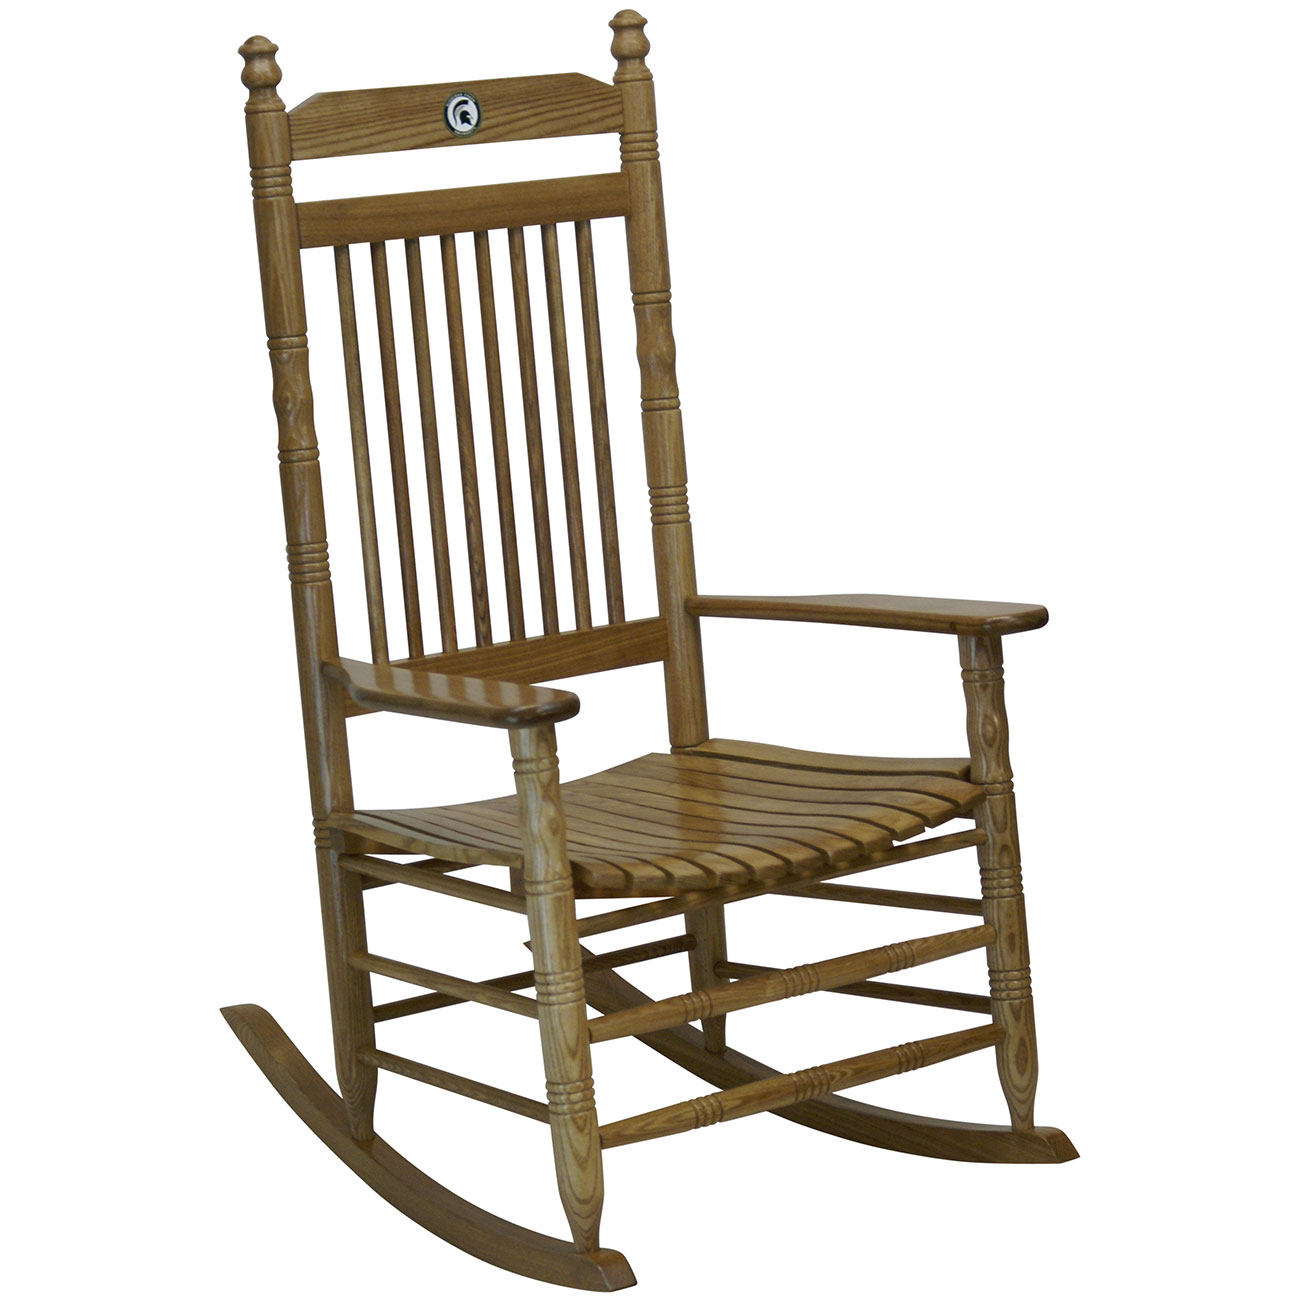 Pleasant Hardwood Rocking Chair Michigan State Frankydiablos Diy Chair Ideas Frankydiabloscom